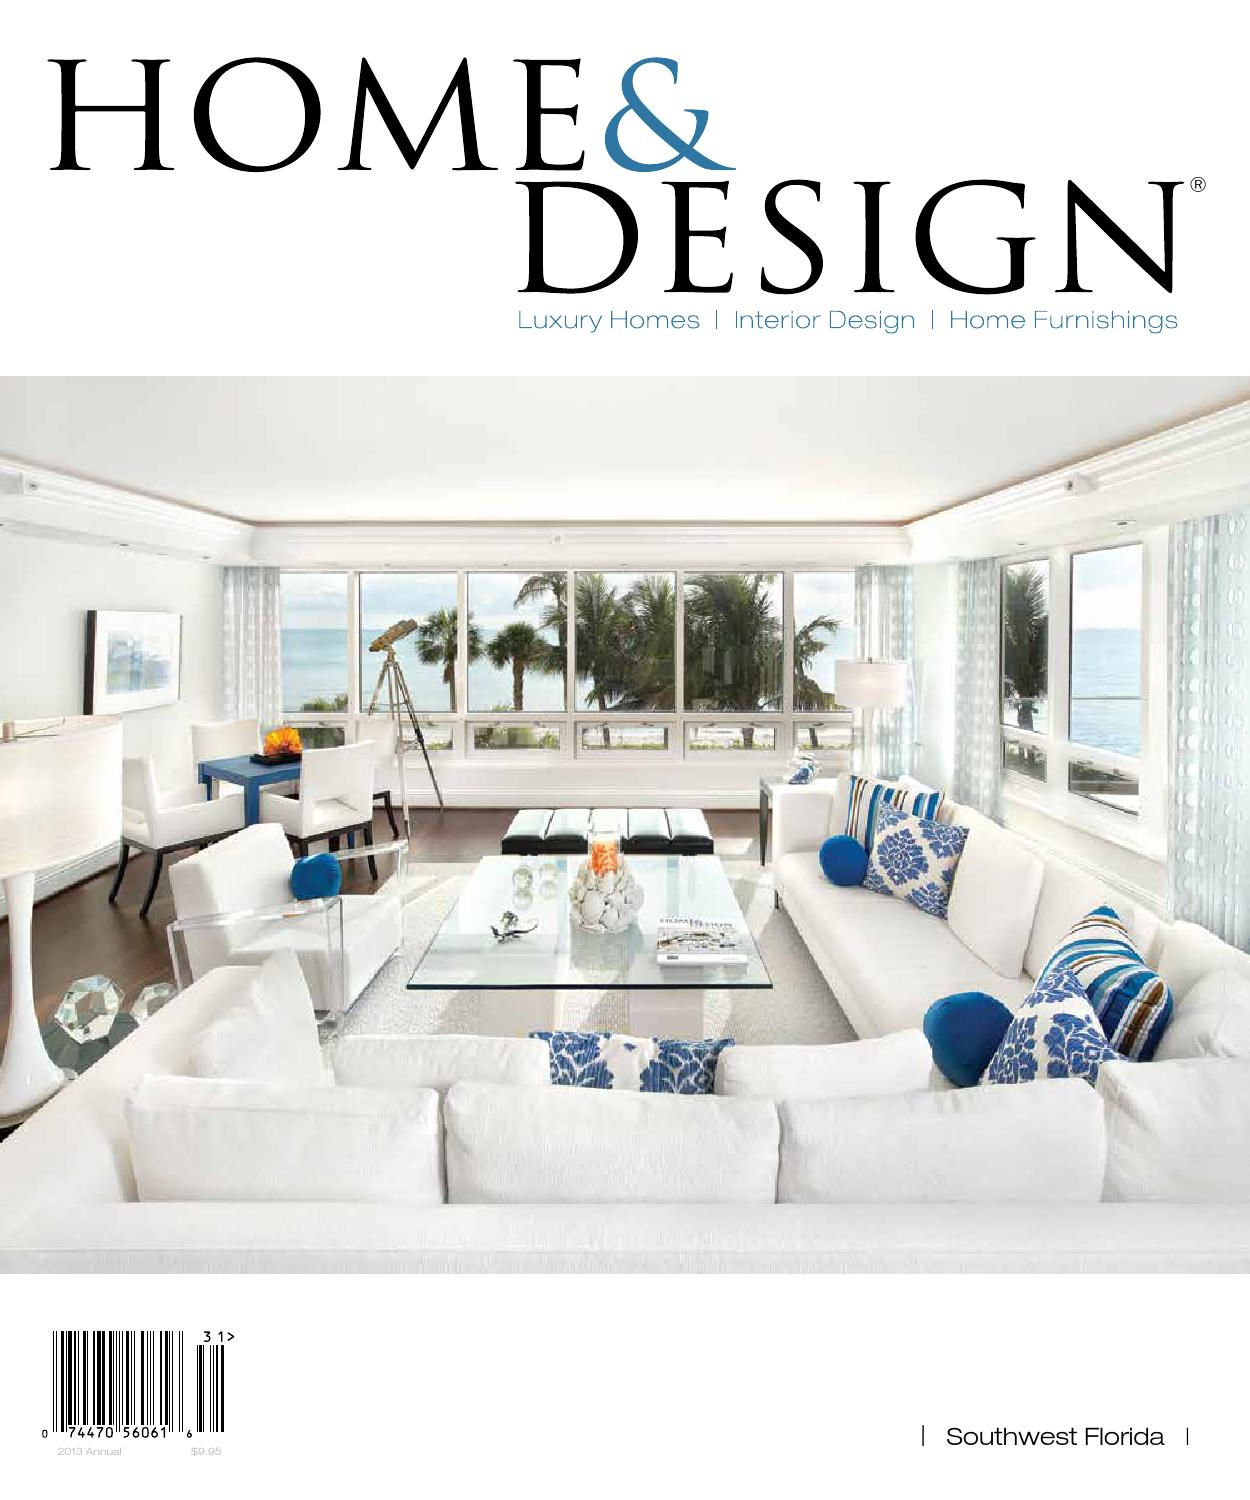 Issuu home design magazine annual resource guide for Interior design resources